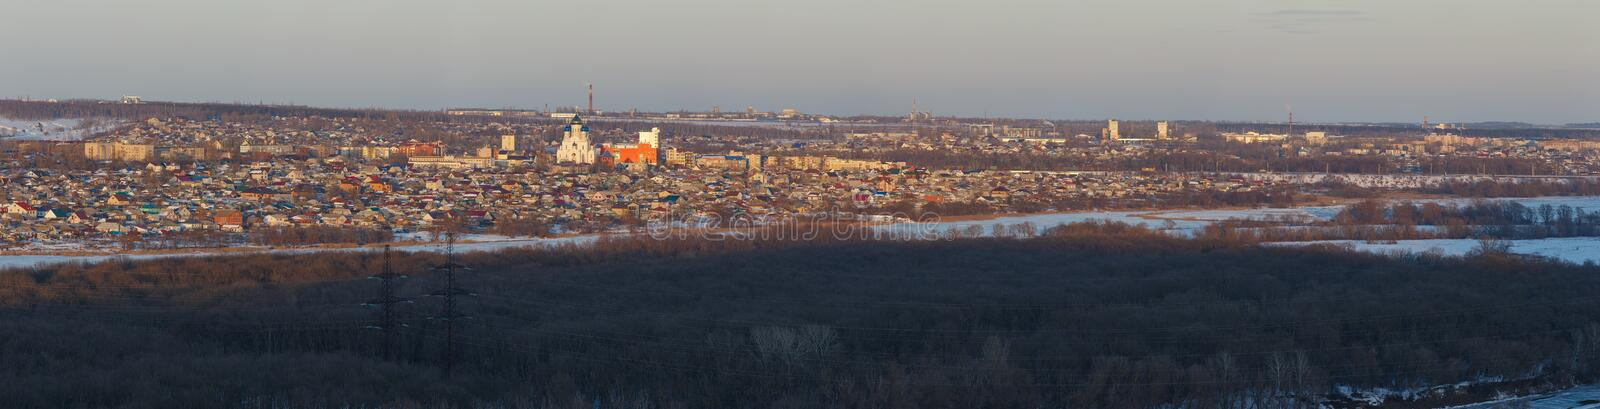 Evening lighting over the city. Sunset time in the twilight sky. Panoramic top view of residential district,. Evening lighting over the city. Sunset time in the stock photos